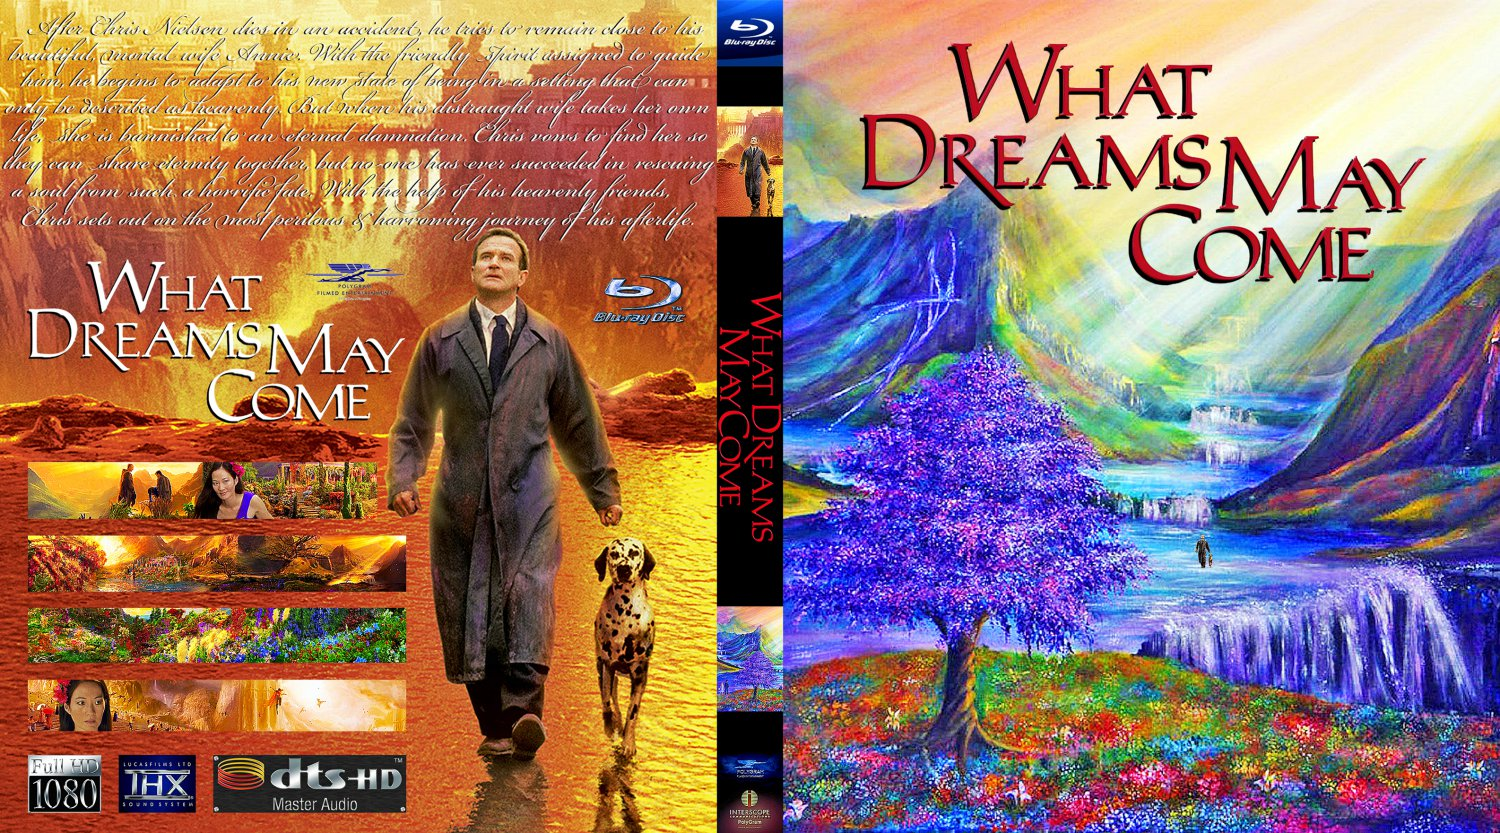 what dreams may come movie bluray custom covers what